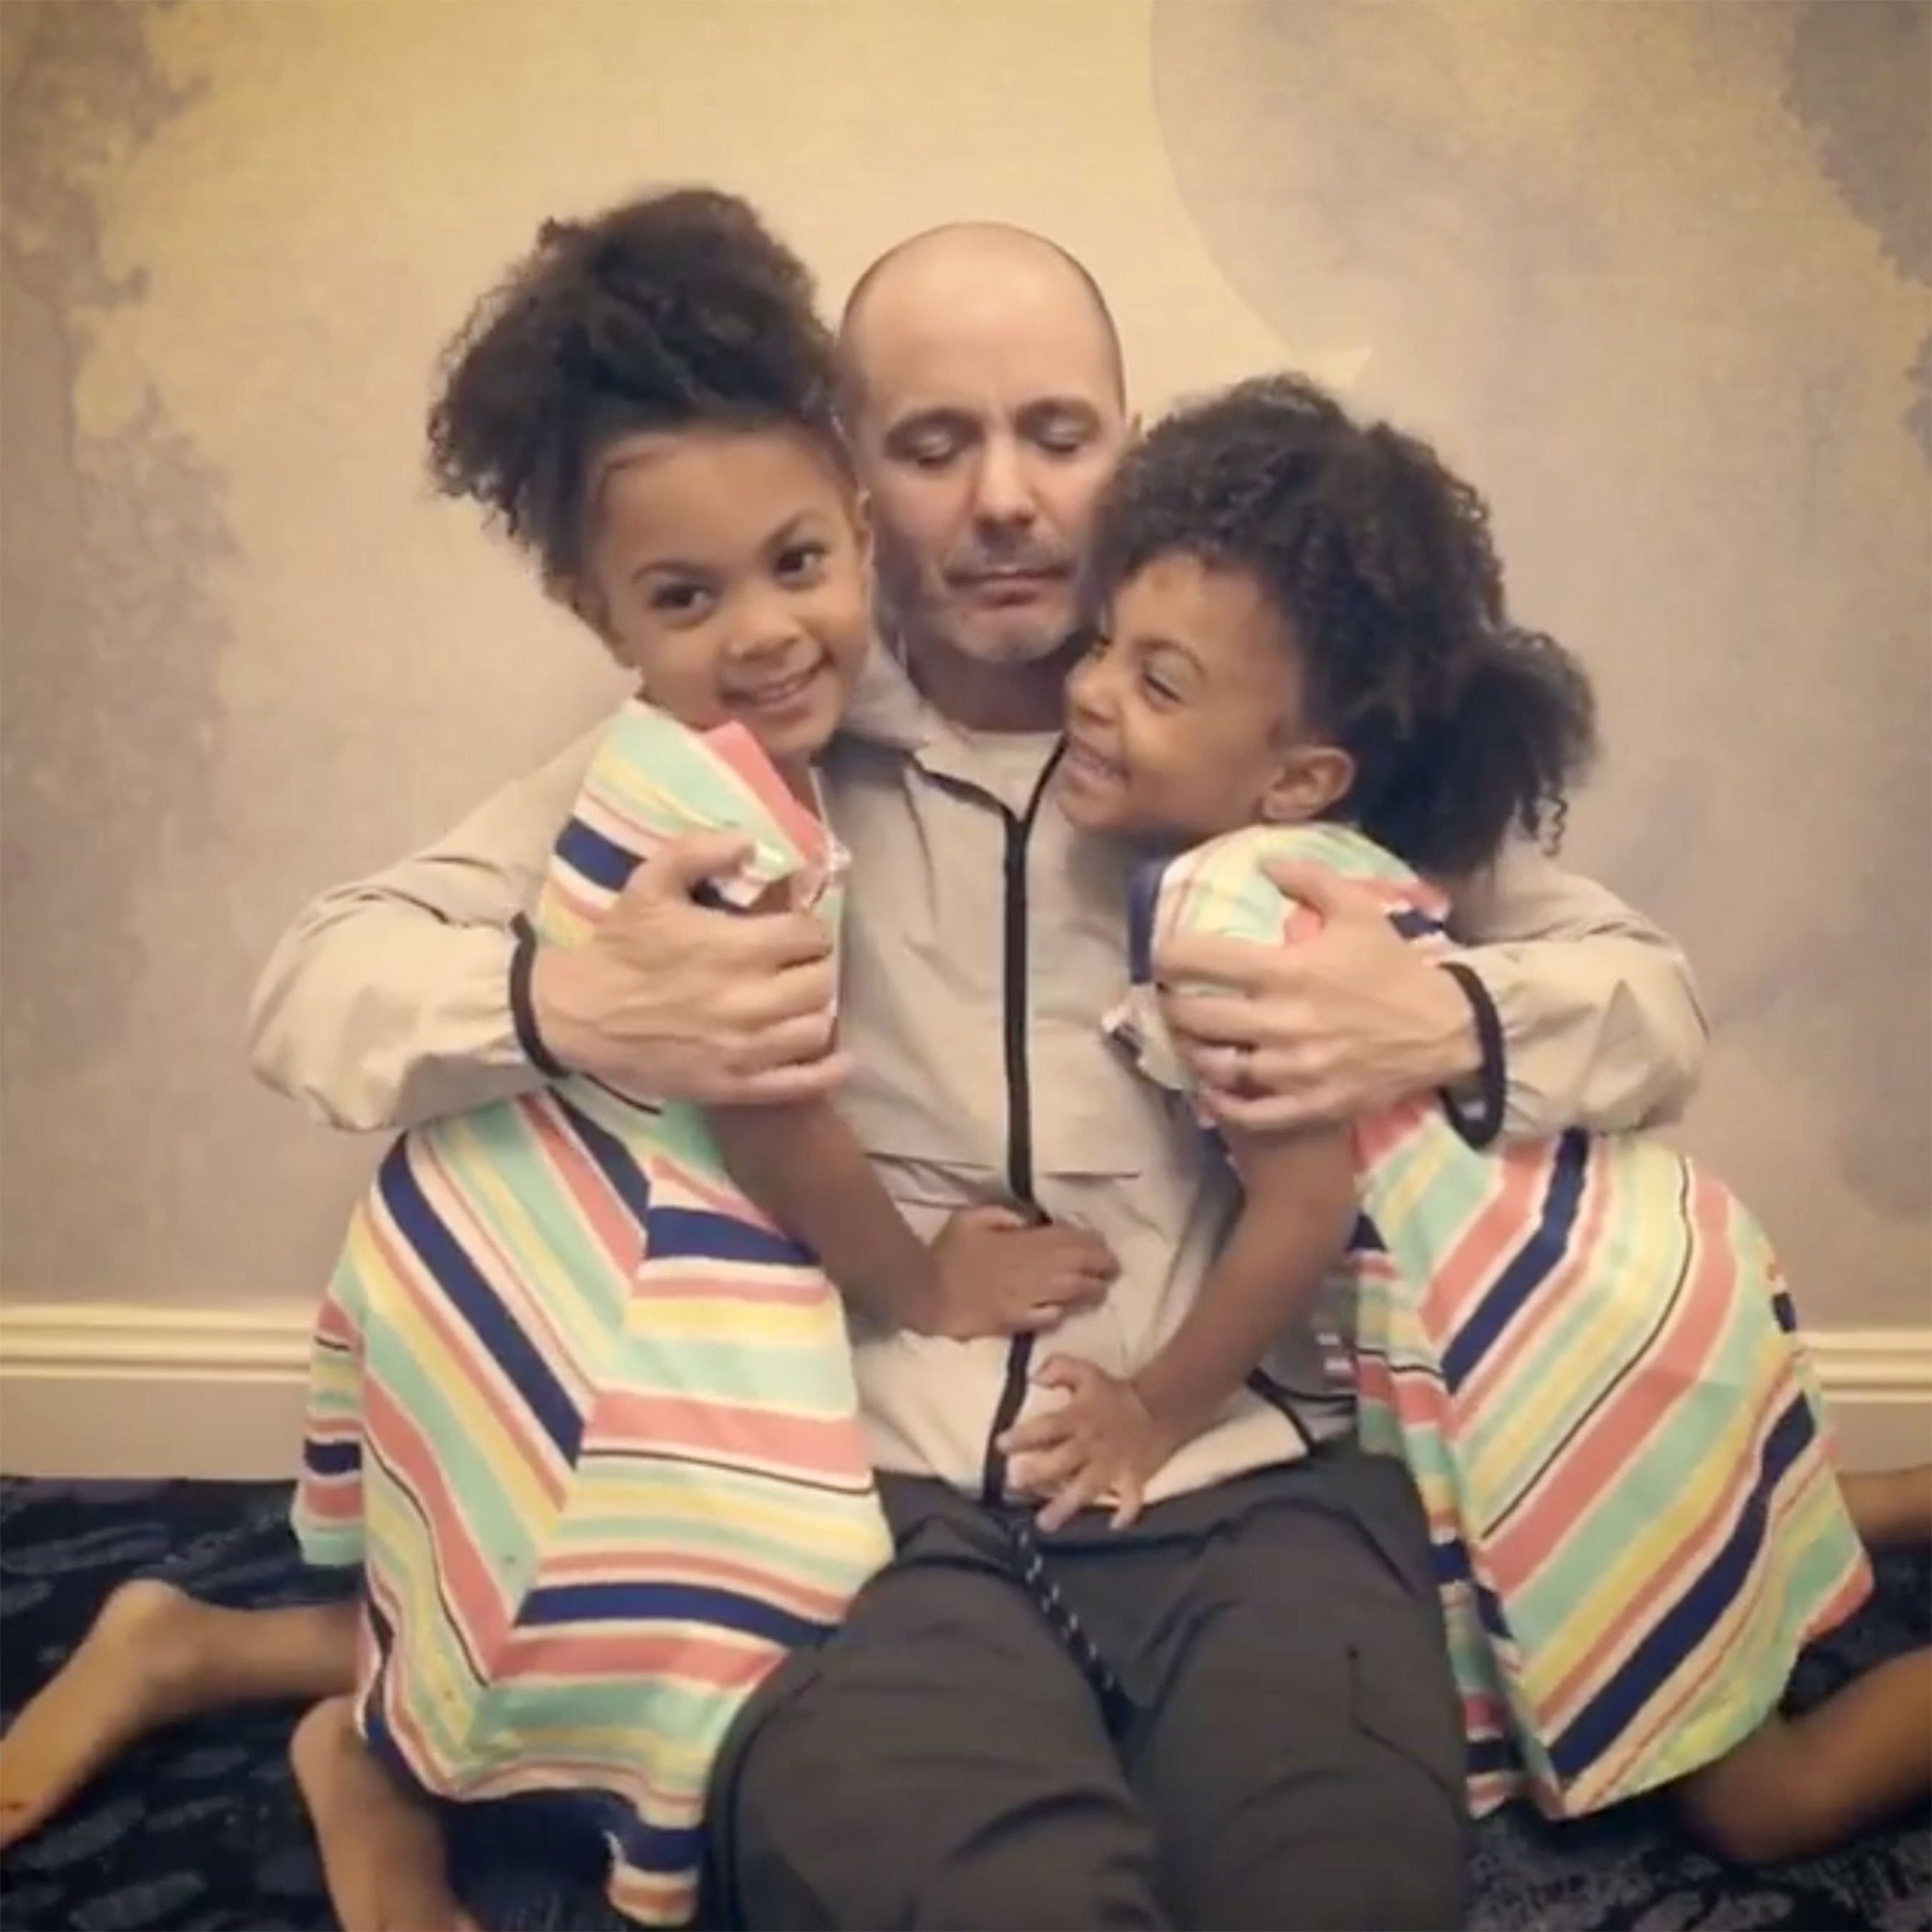 Dad of Biracial YouTube Stars, the McClure Twins, Apologizes After Racist Tweets Resurface